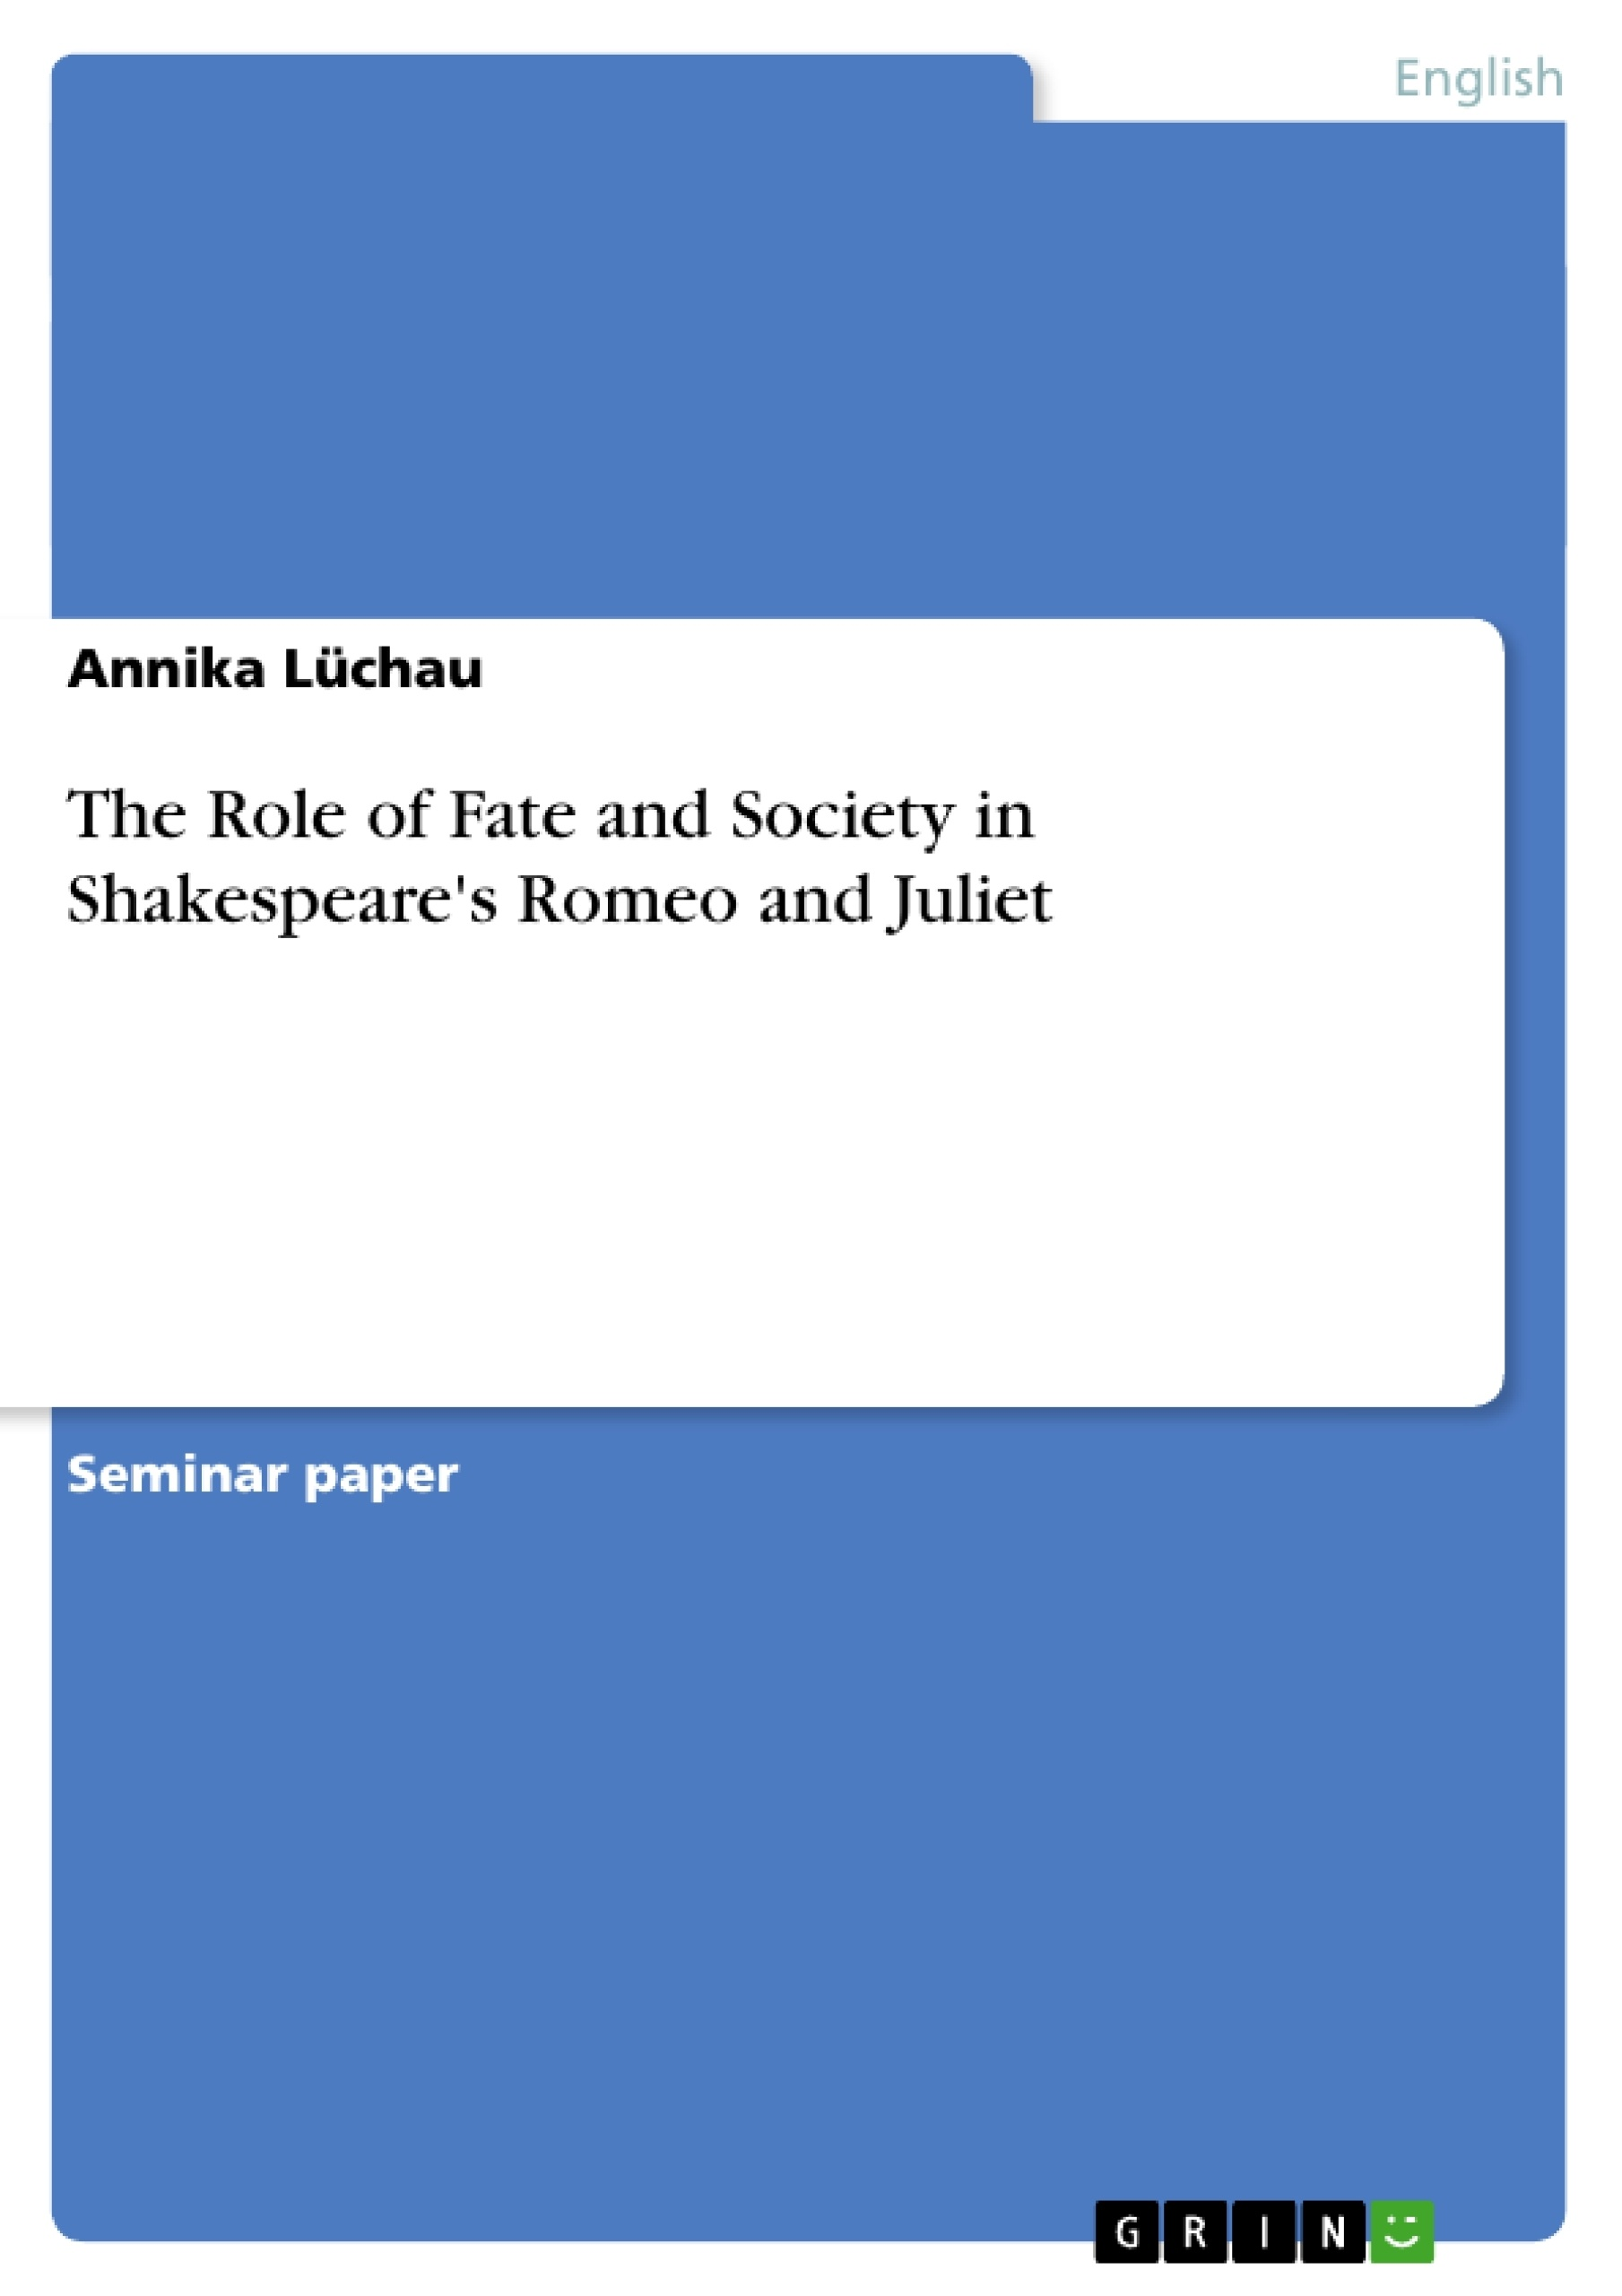 the role of fate and society in shakespeare s romeo and juliet upload your own papers earn money and win an iphone 7